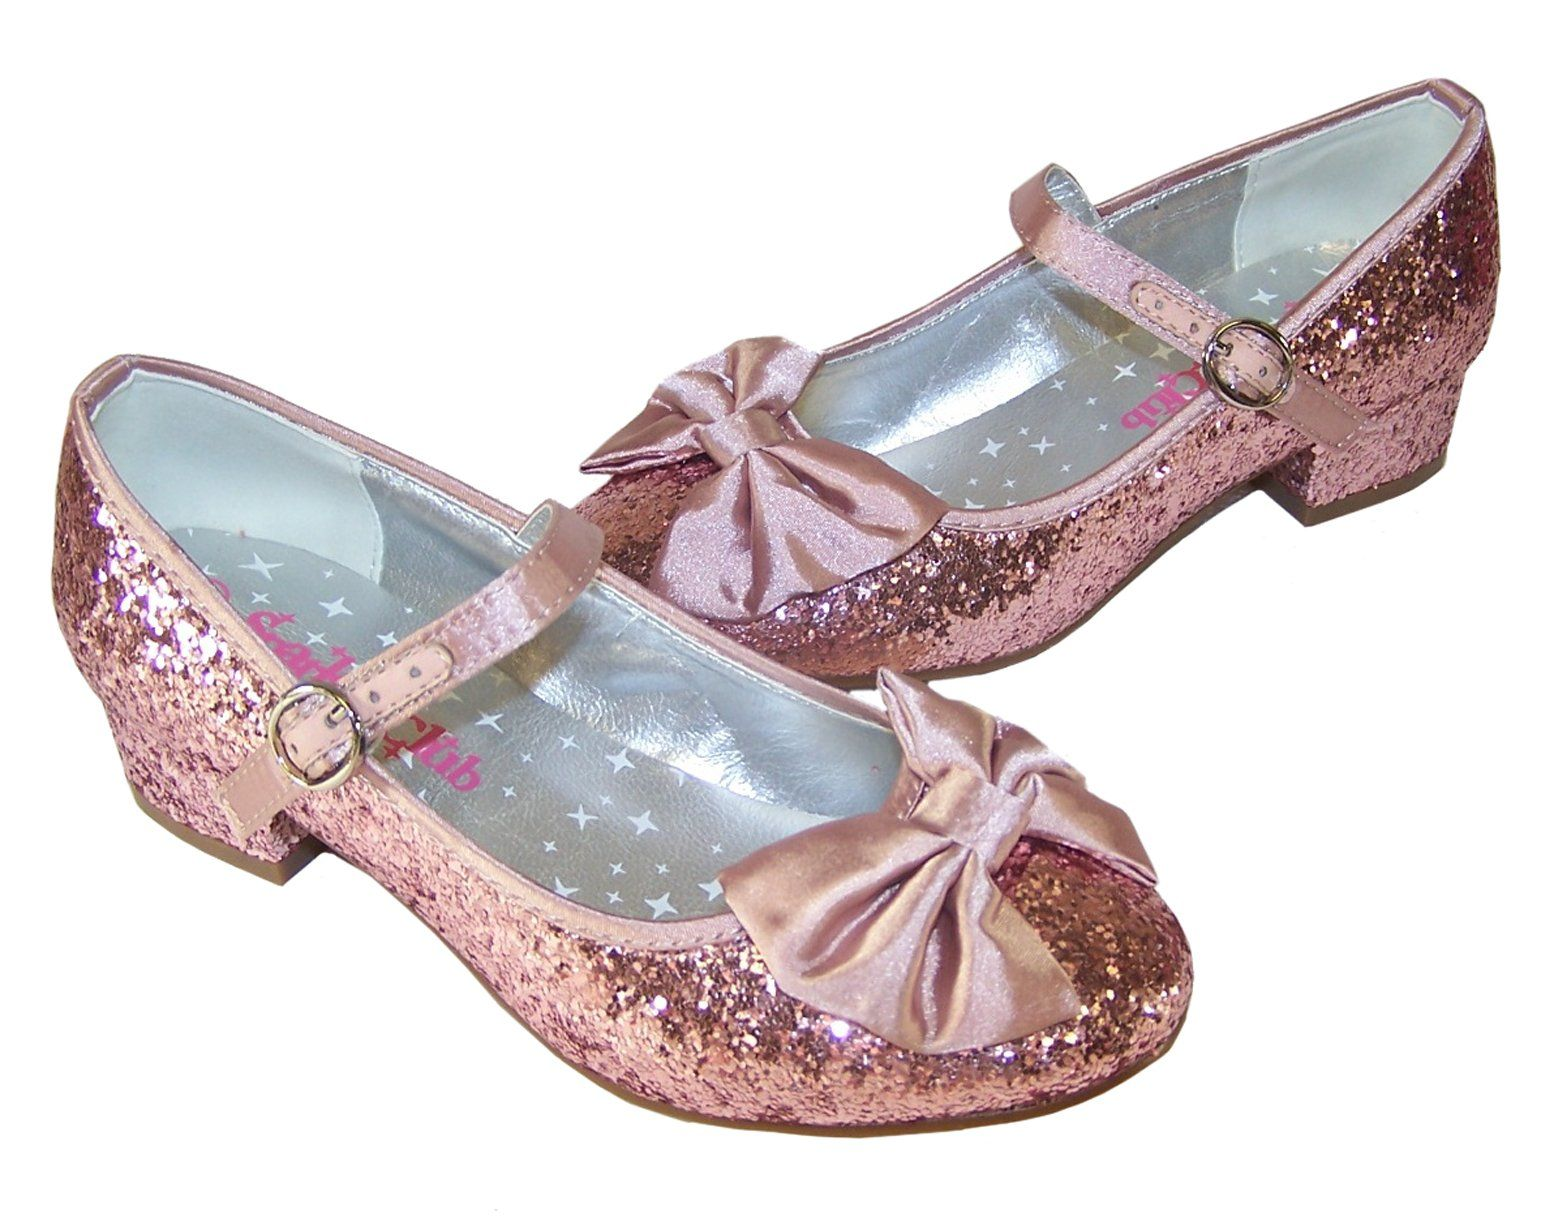 Girls pink glitter low heeled party shoes size 13 Low